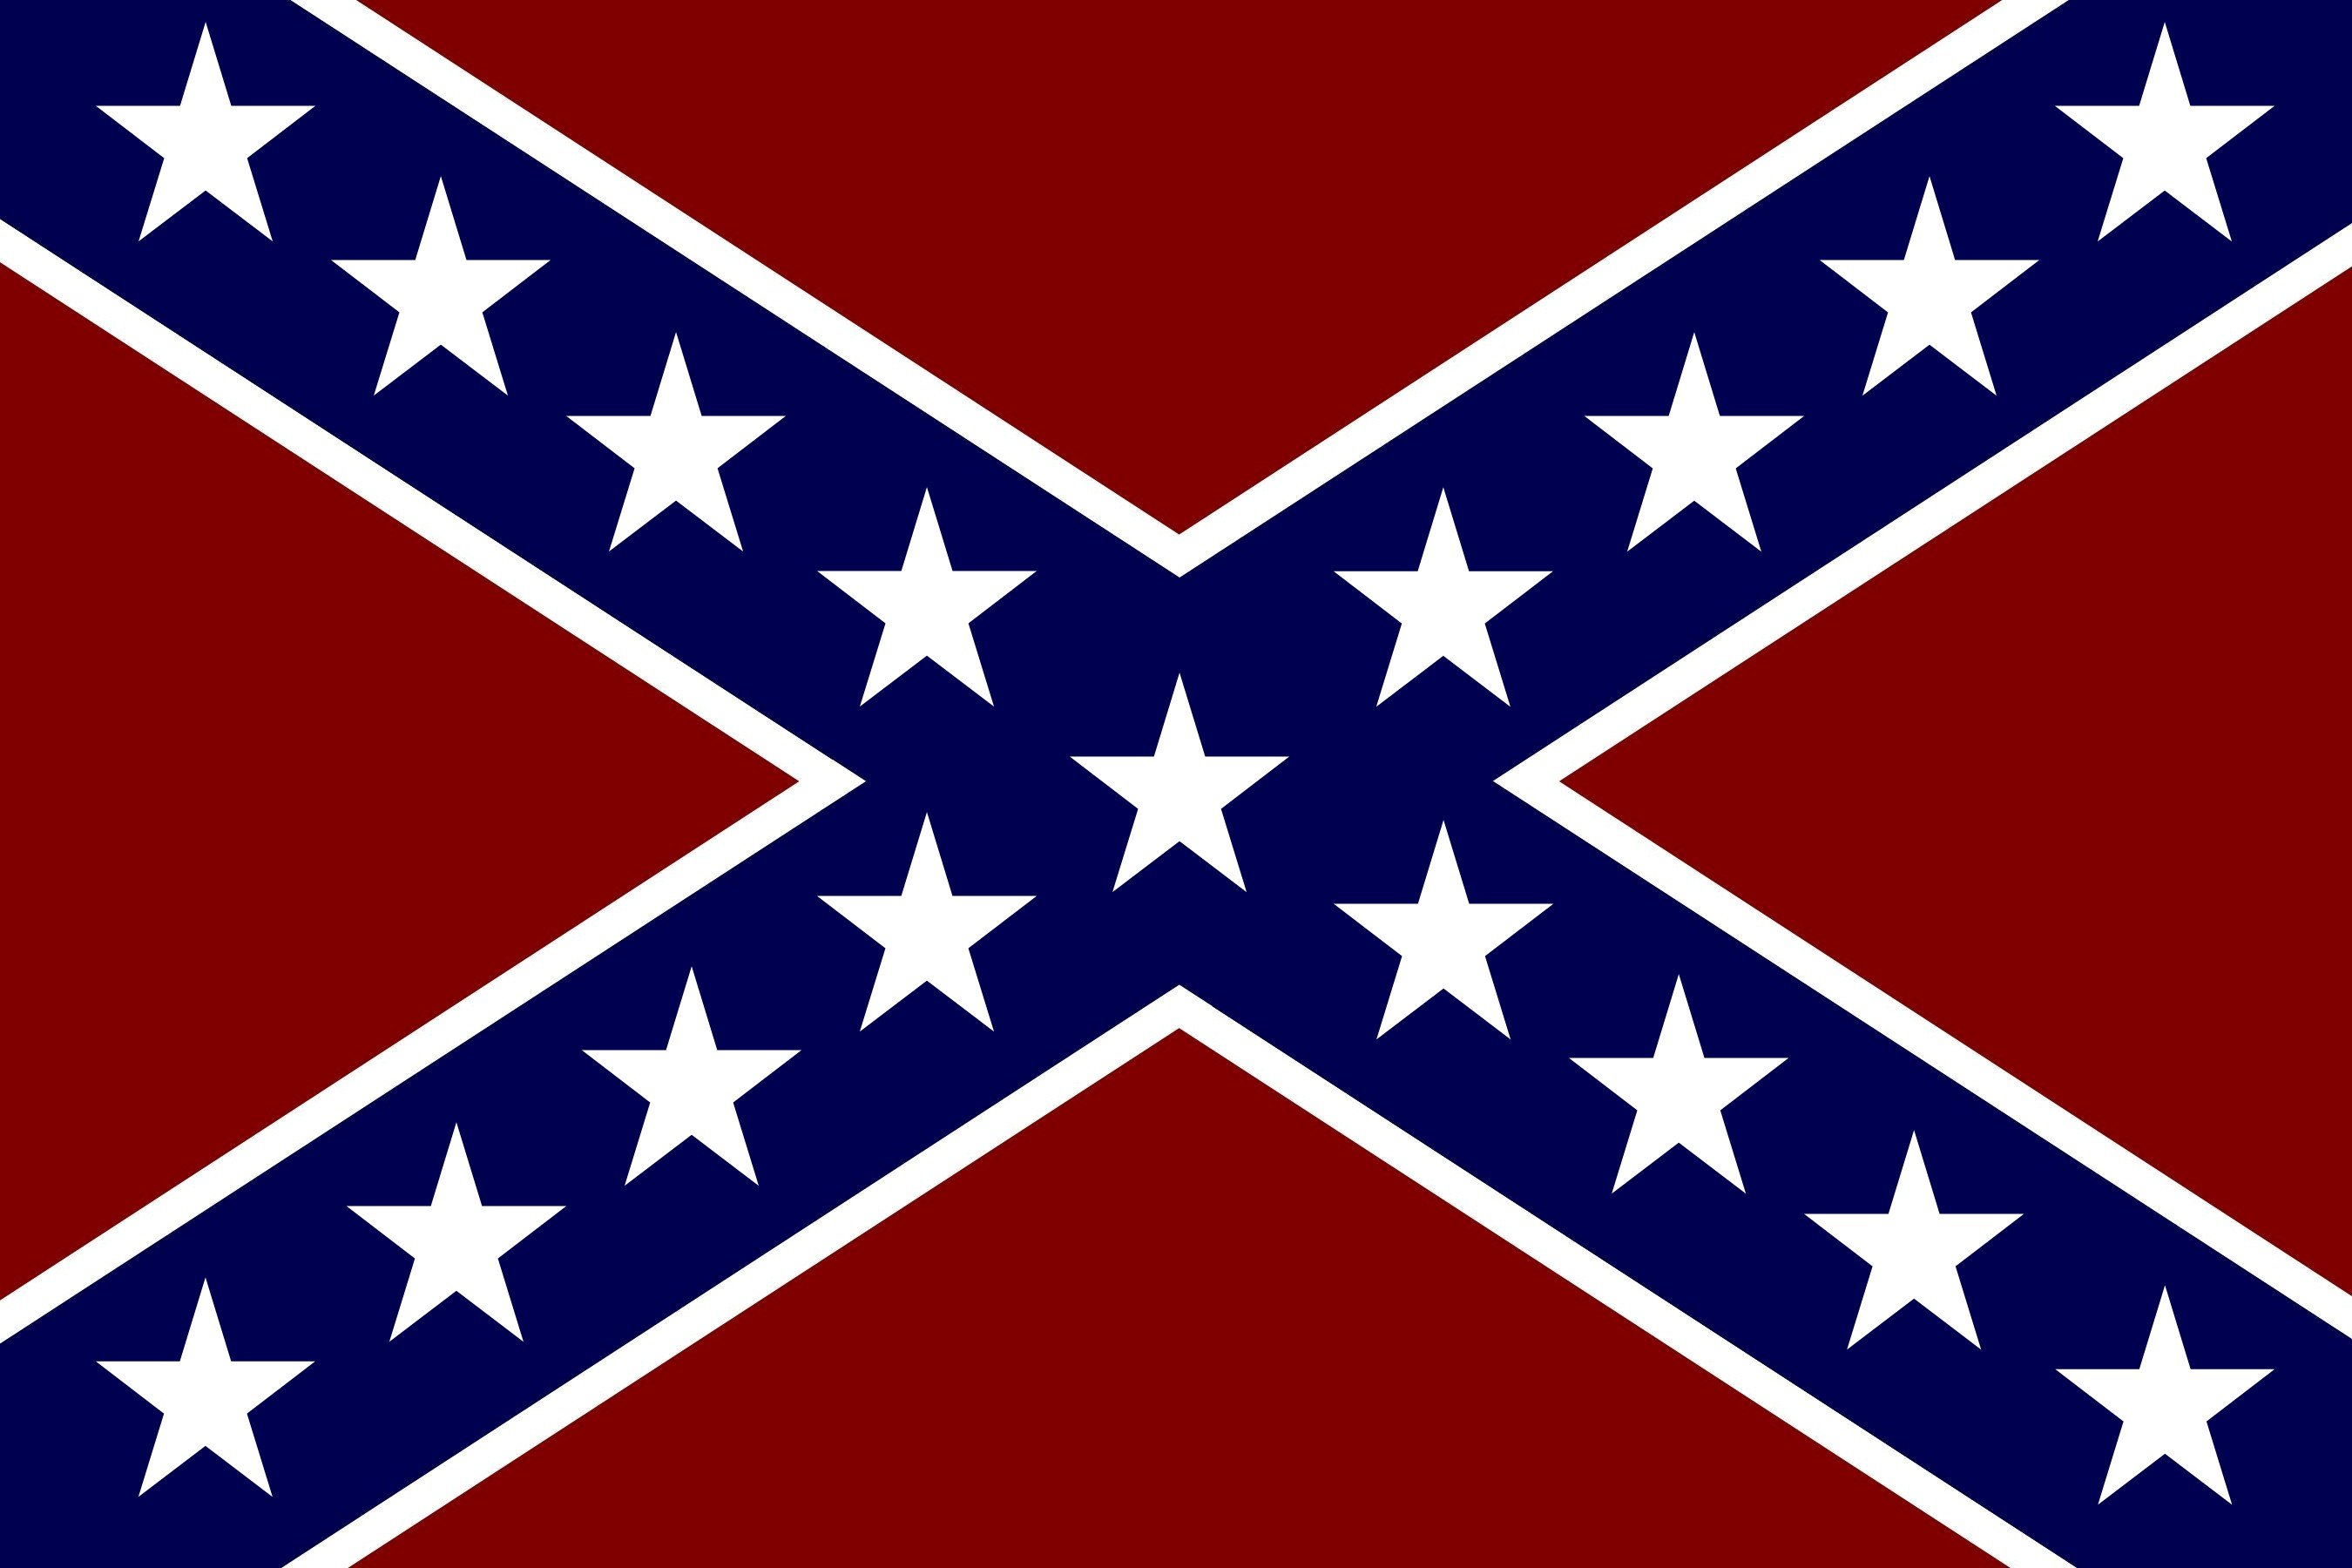 pin download 2560x1440 confederate states of america flag